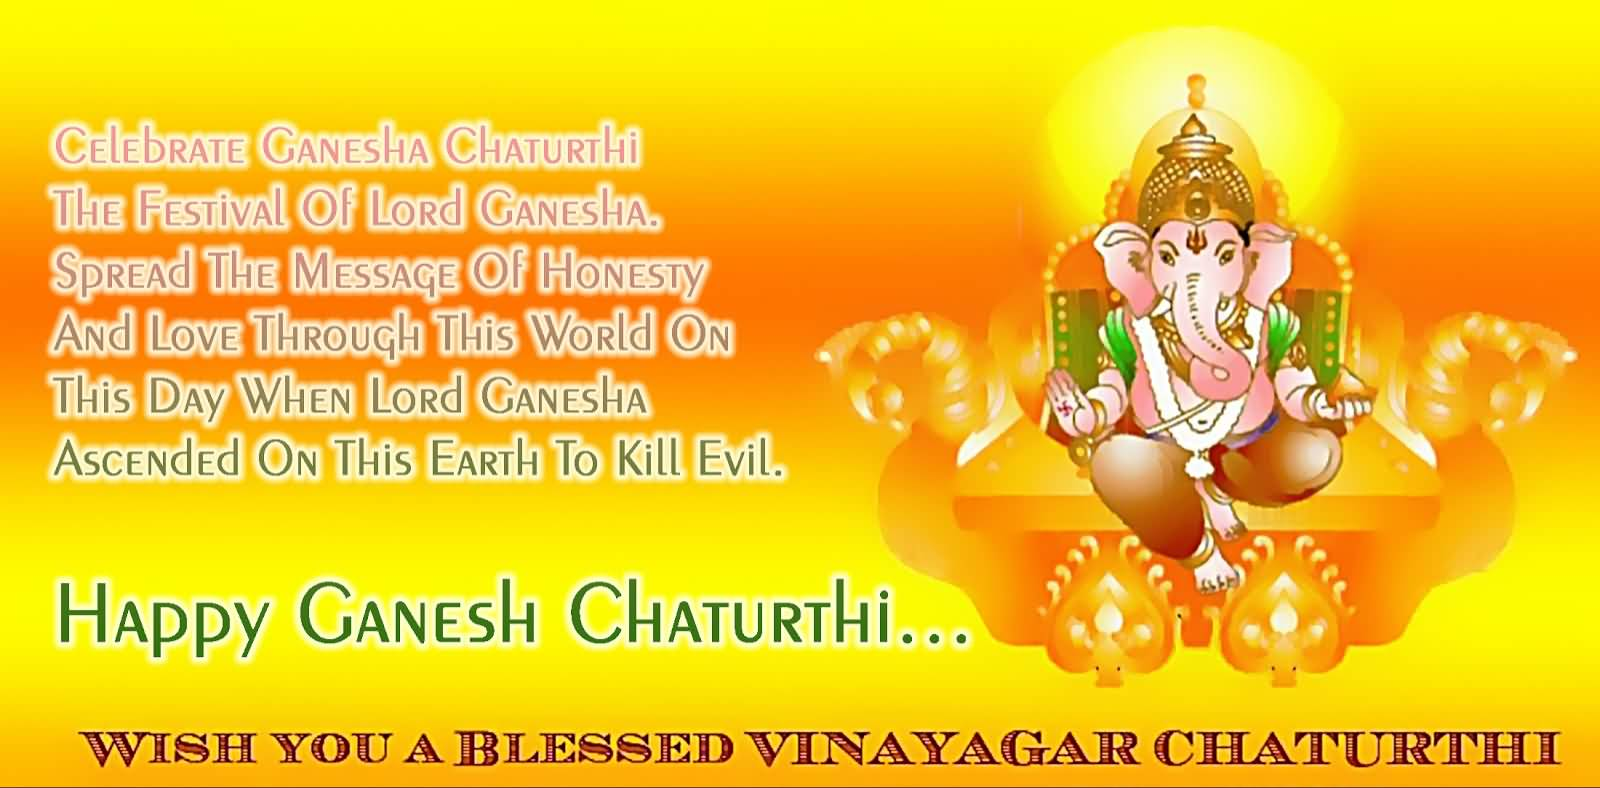 ganesh utsav essay in marathi History of ganesh chaturthi ganesh chaturthi, one of the most sacred hindu festivals, celebrates the birth of lord ganesha - the supreme god of wisdom and prosperity this annual occassion is observed by the whole of hindu community with great fervor and piety.